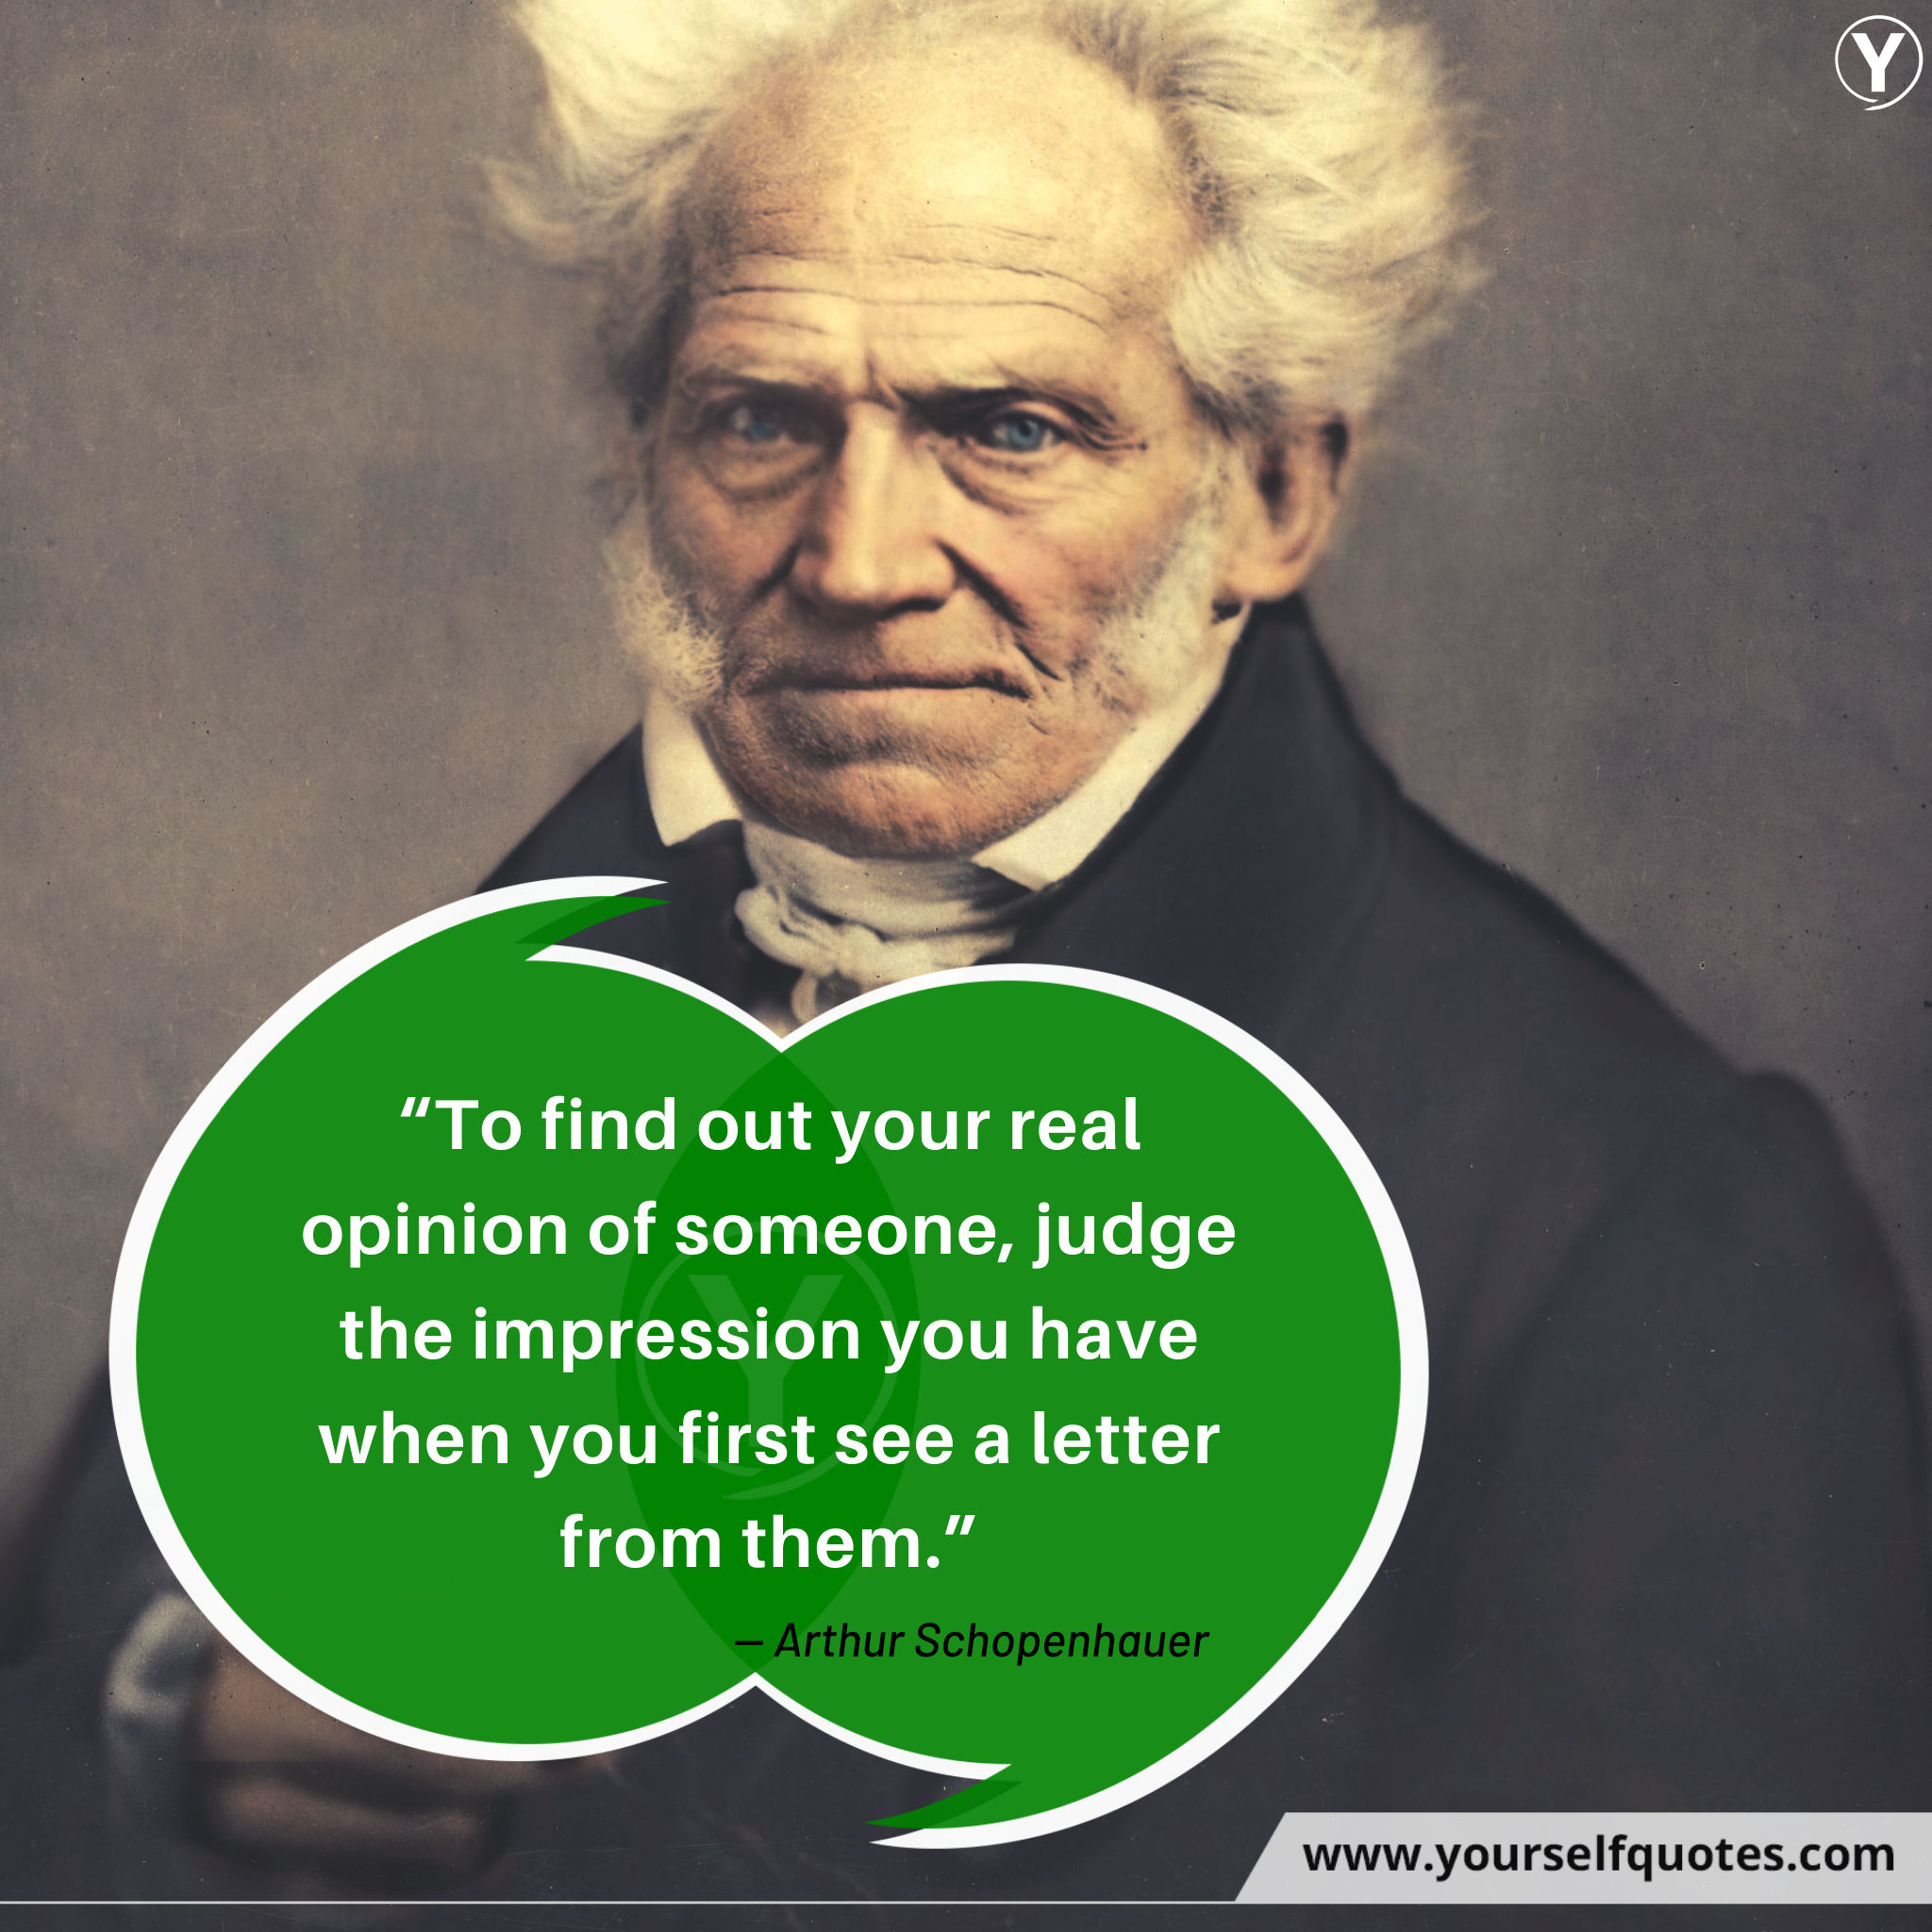 Arthur Schopenhauer Quotes Images